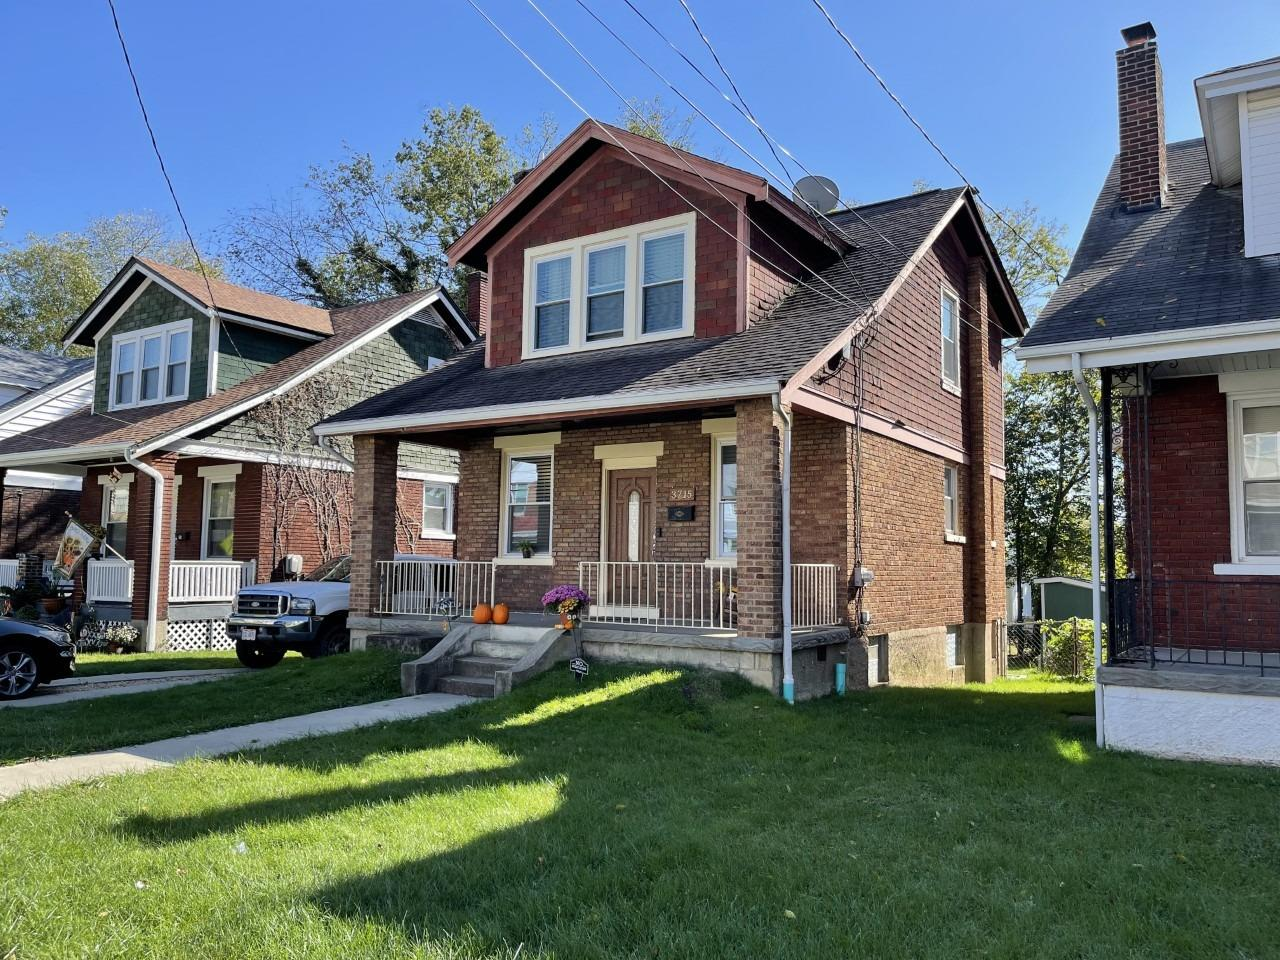 3715 Woodbine Avenue, Cheviot, Ohio 45211, 3 Bedrooms Bedrooms, 6 Rooms Rooms,1 BathroomBathrooms,Single Family Residence,For Sale,Woodbine,1719433